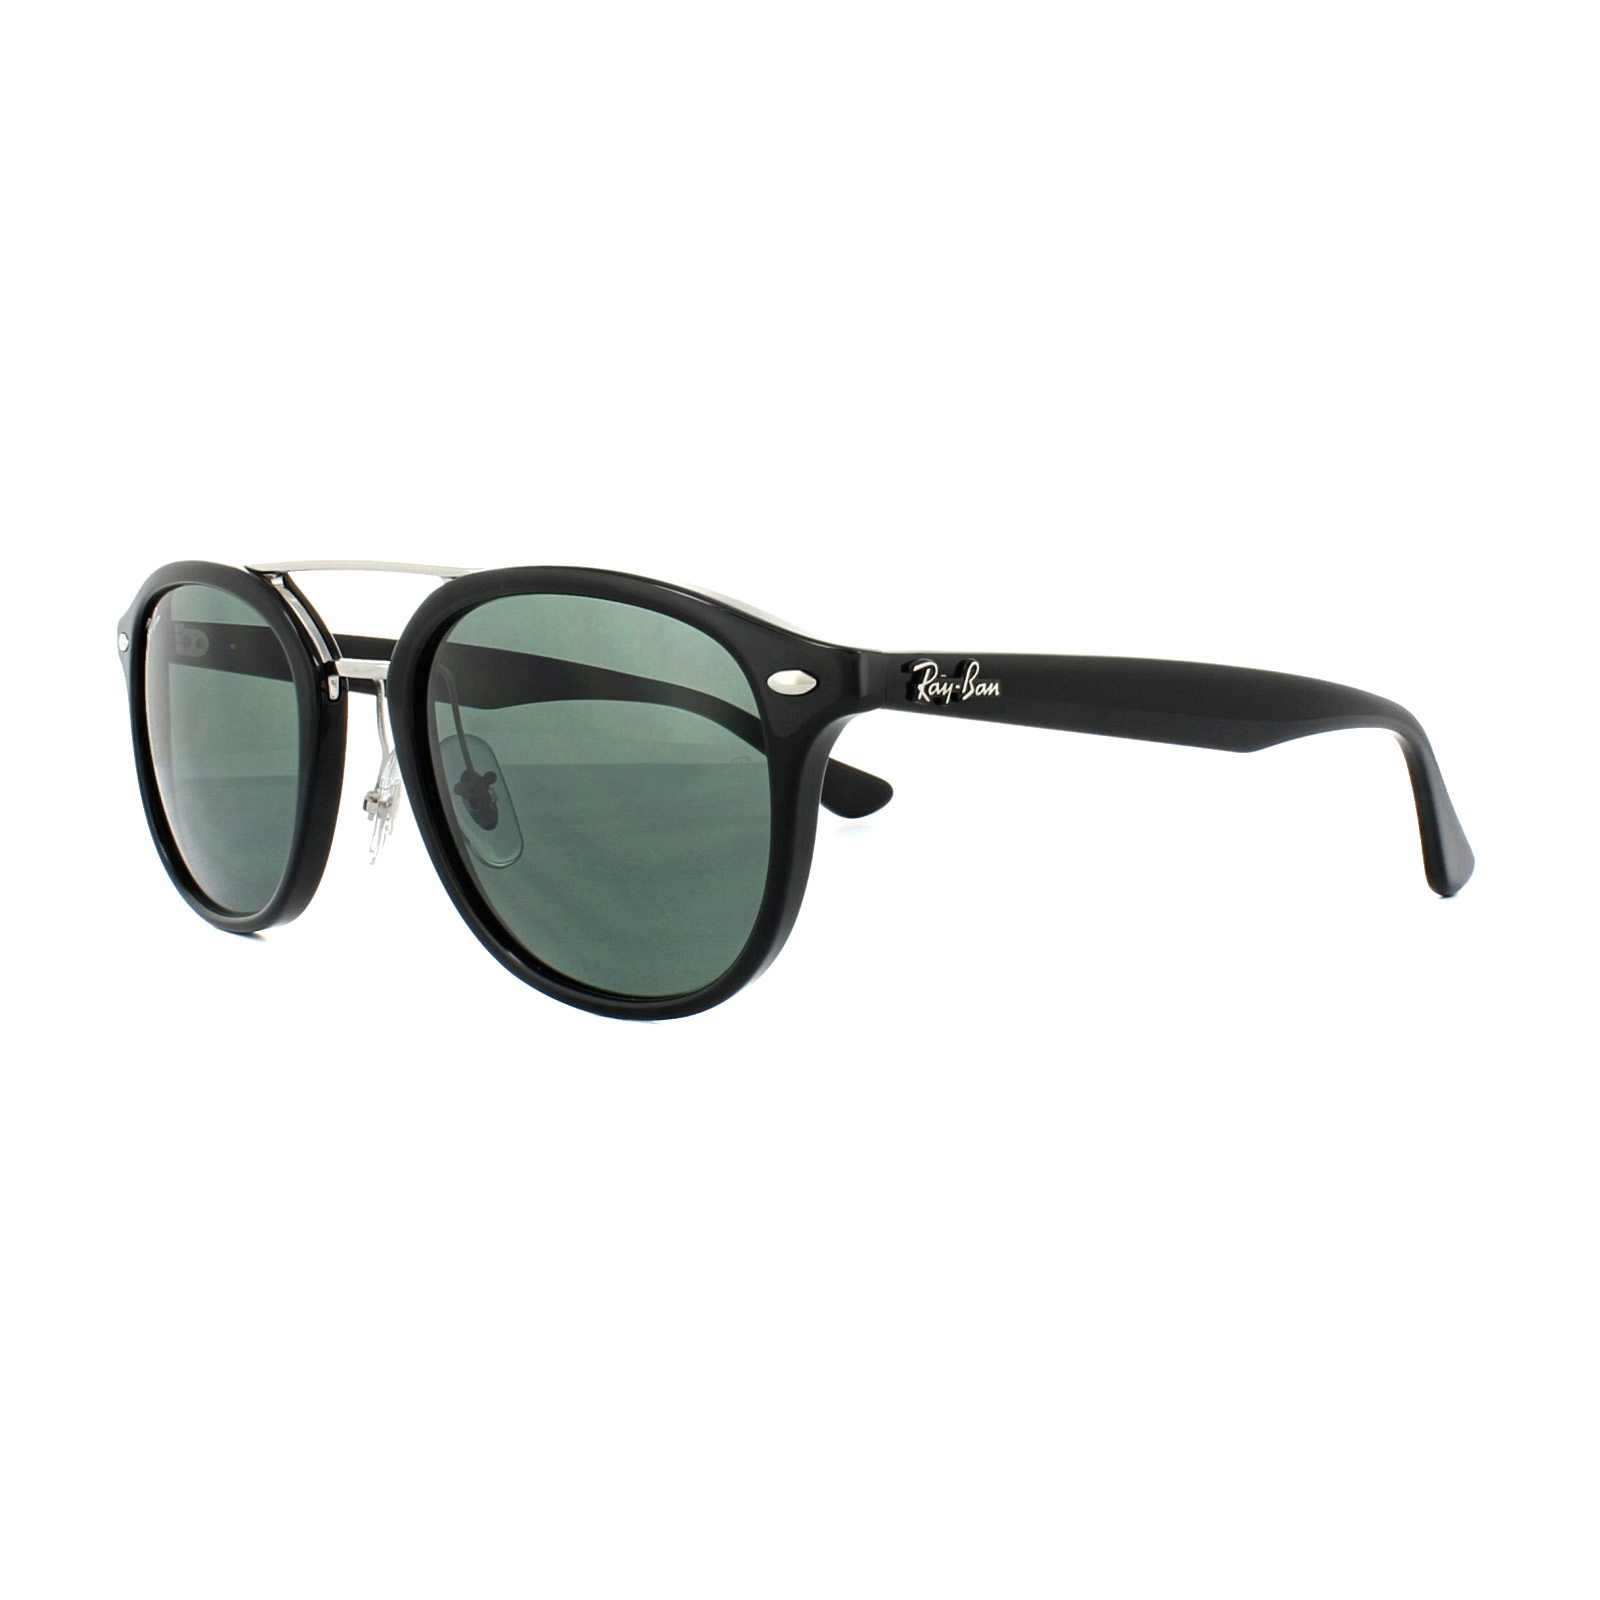 9741eee4e4 Ray-Ban Sunglasses 2183 901 71 Black Green 8053672741339